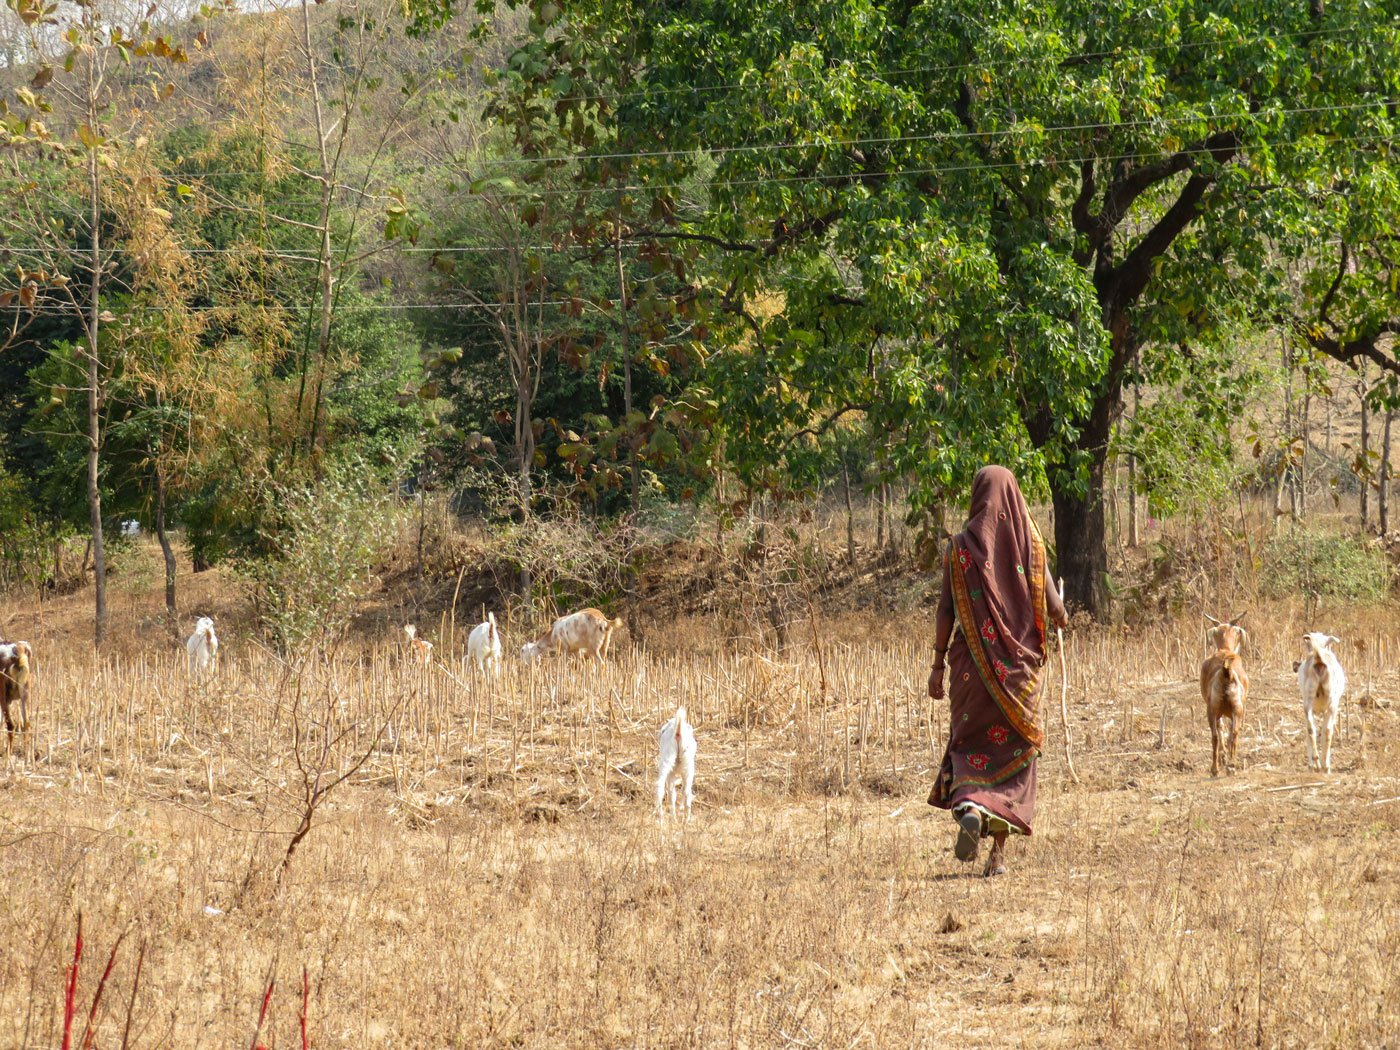 When Shevanta Tadvi is out grazing her 12 goats near the forest in Maharajapada hamlet, she is free from taunts of being 'barren'